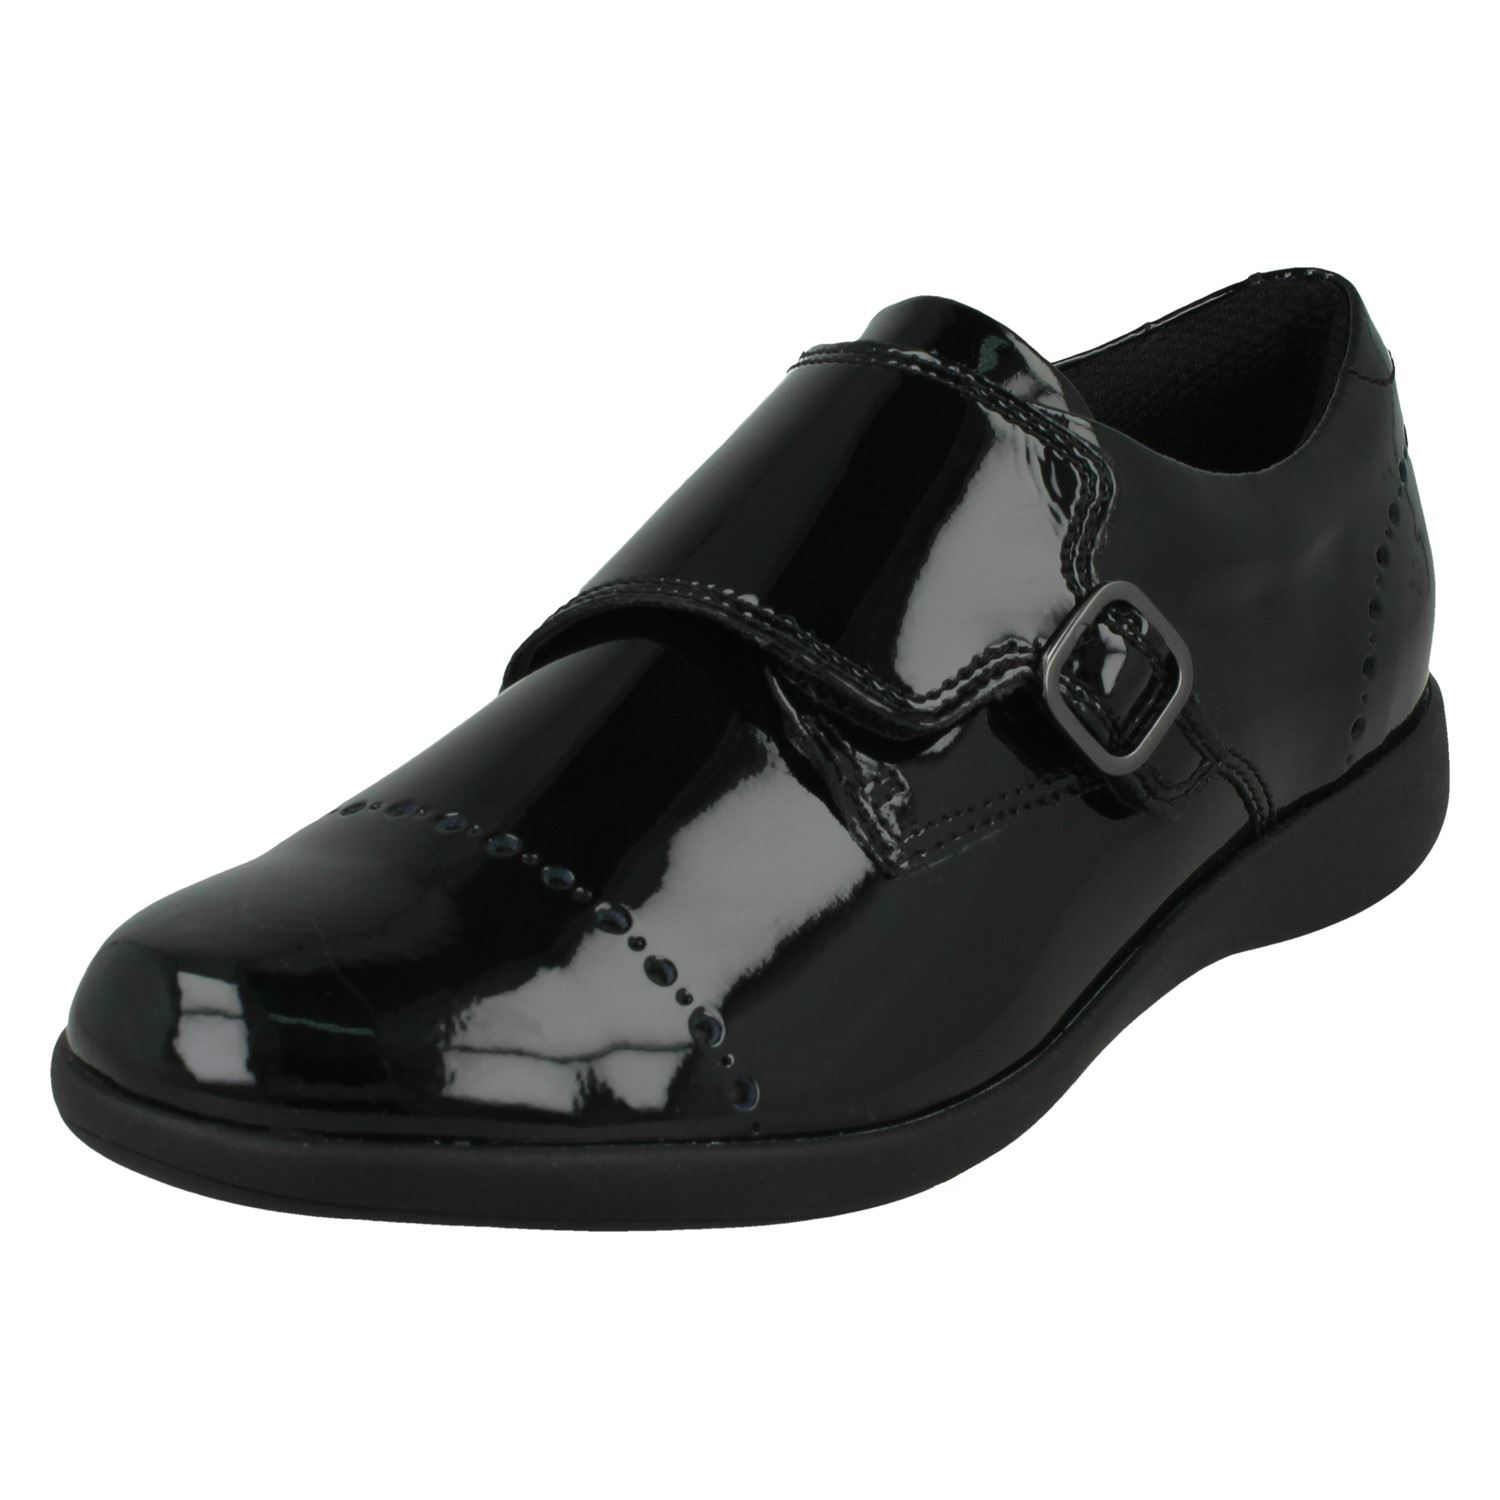 Girls Clarks Formal Hook /& Loop Patent//Leather School Shoes Etch Spark